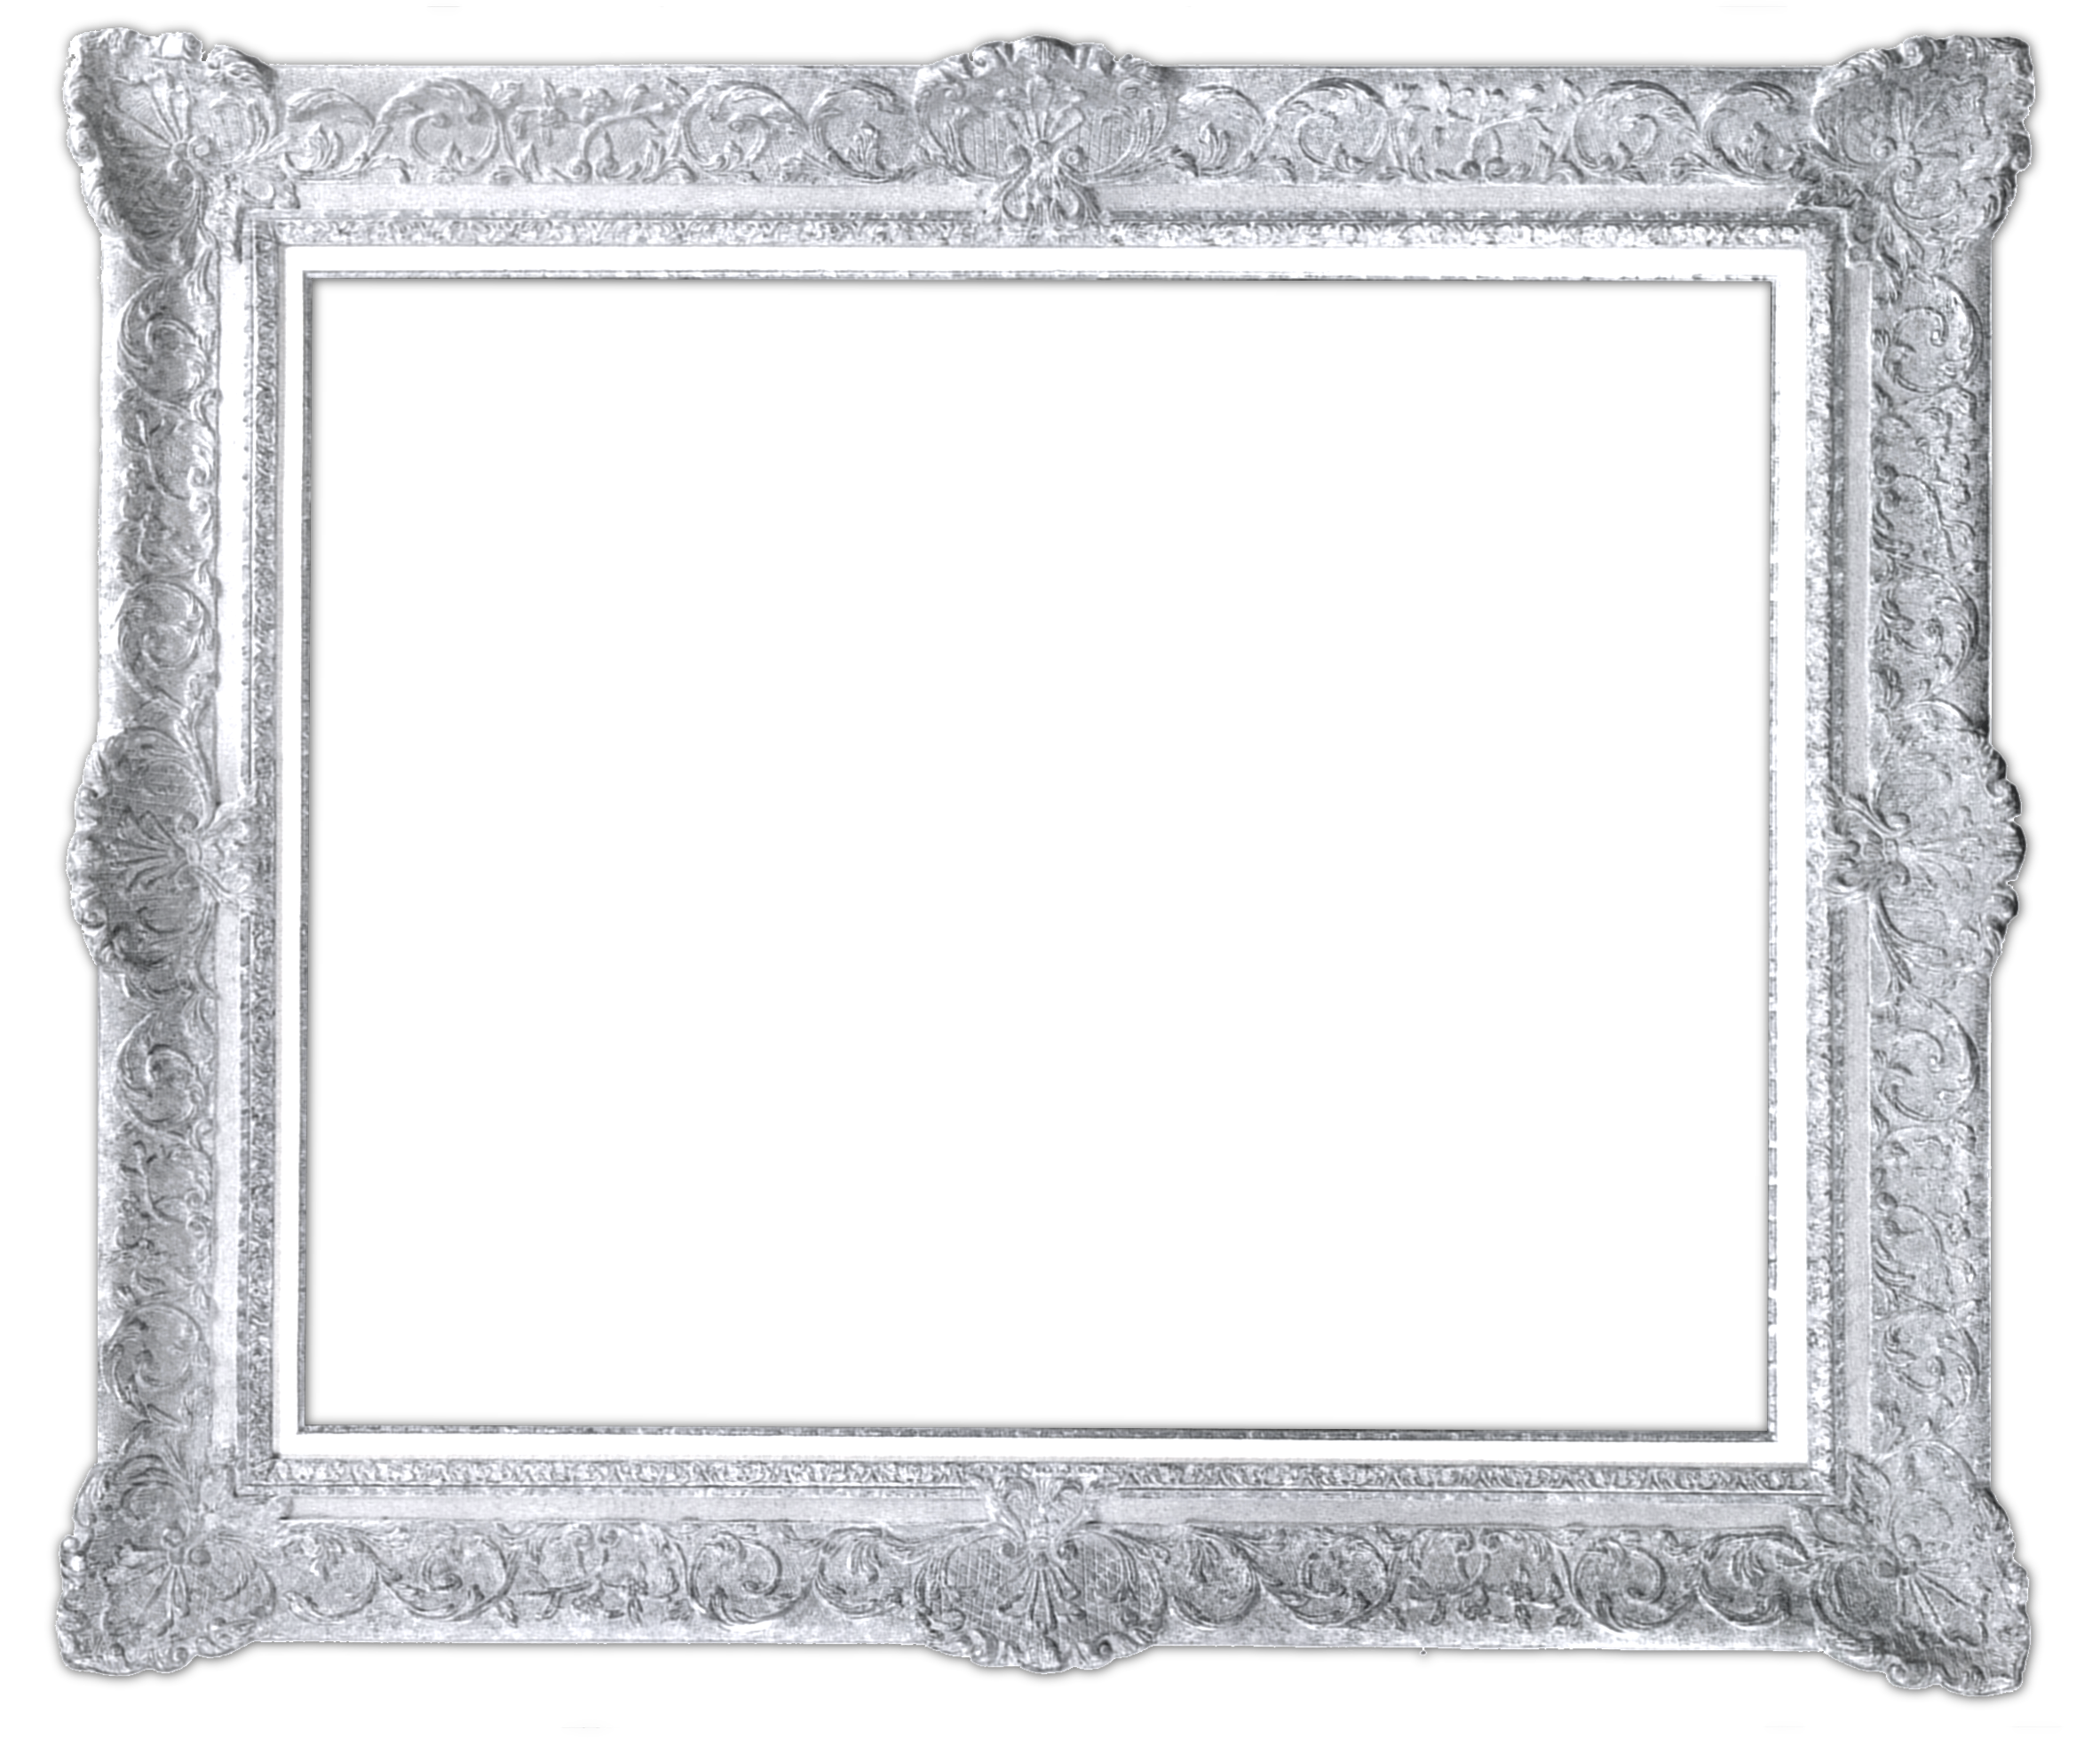 Winsome picture frames transparent. Silver frame png